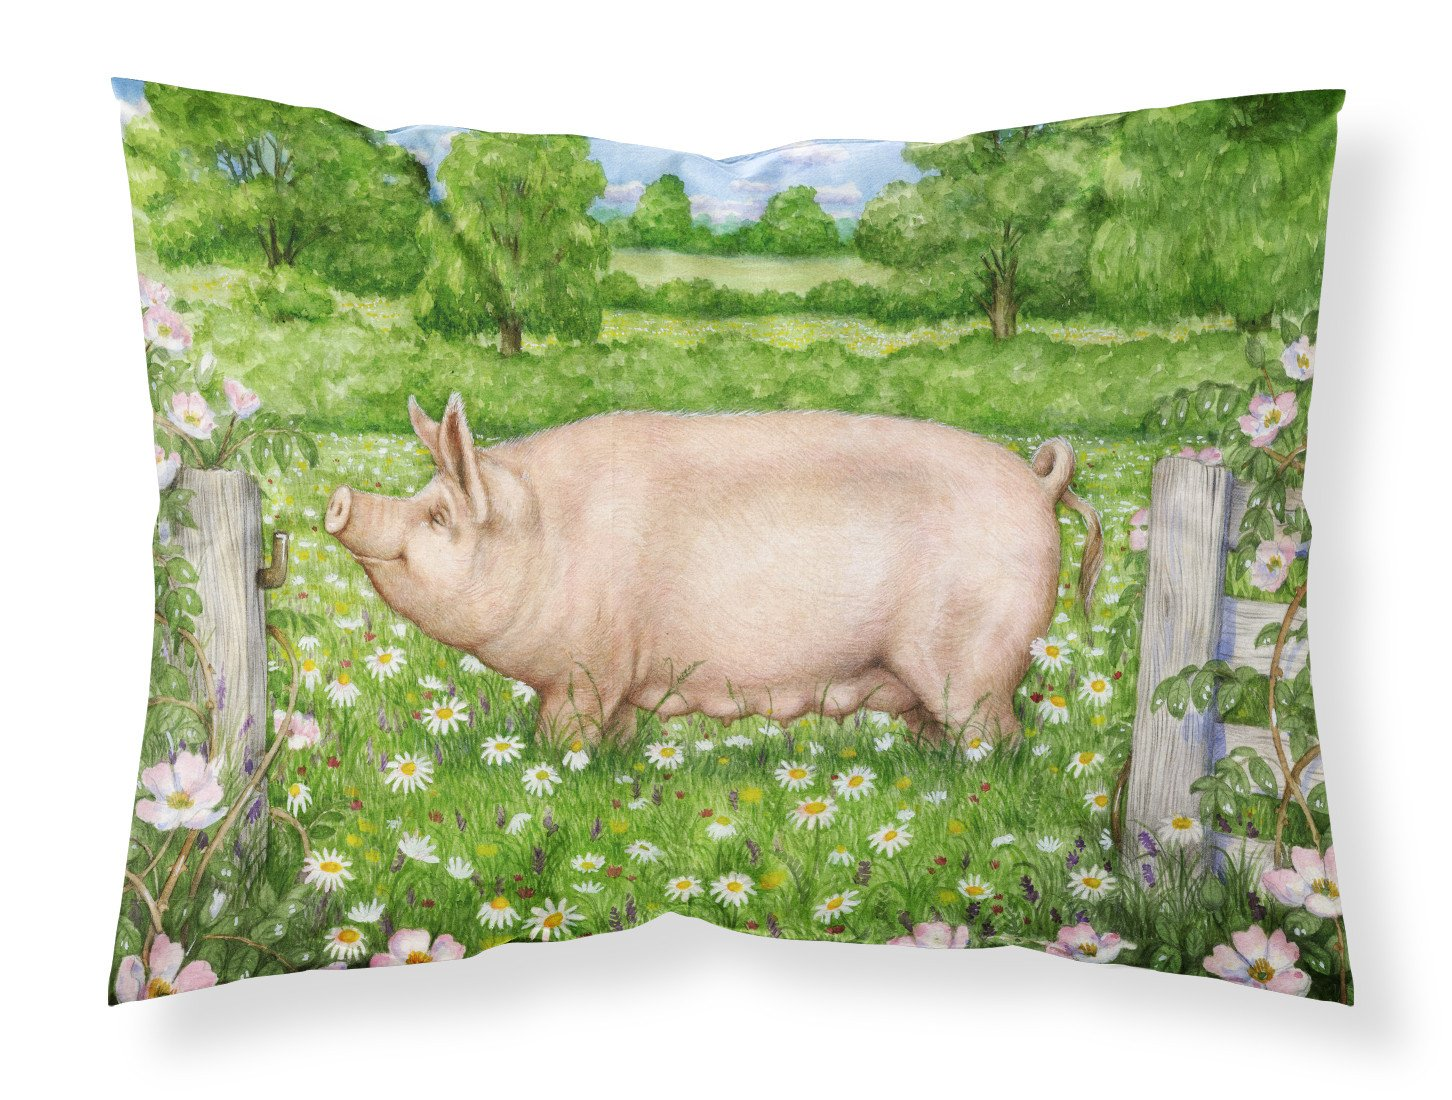 Pig In Dasies by Debbie Cook Fabric Standard Pillowcase CDCO0374PILLOWCASE by Caroline's Treasures